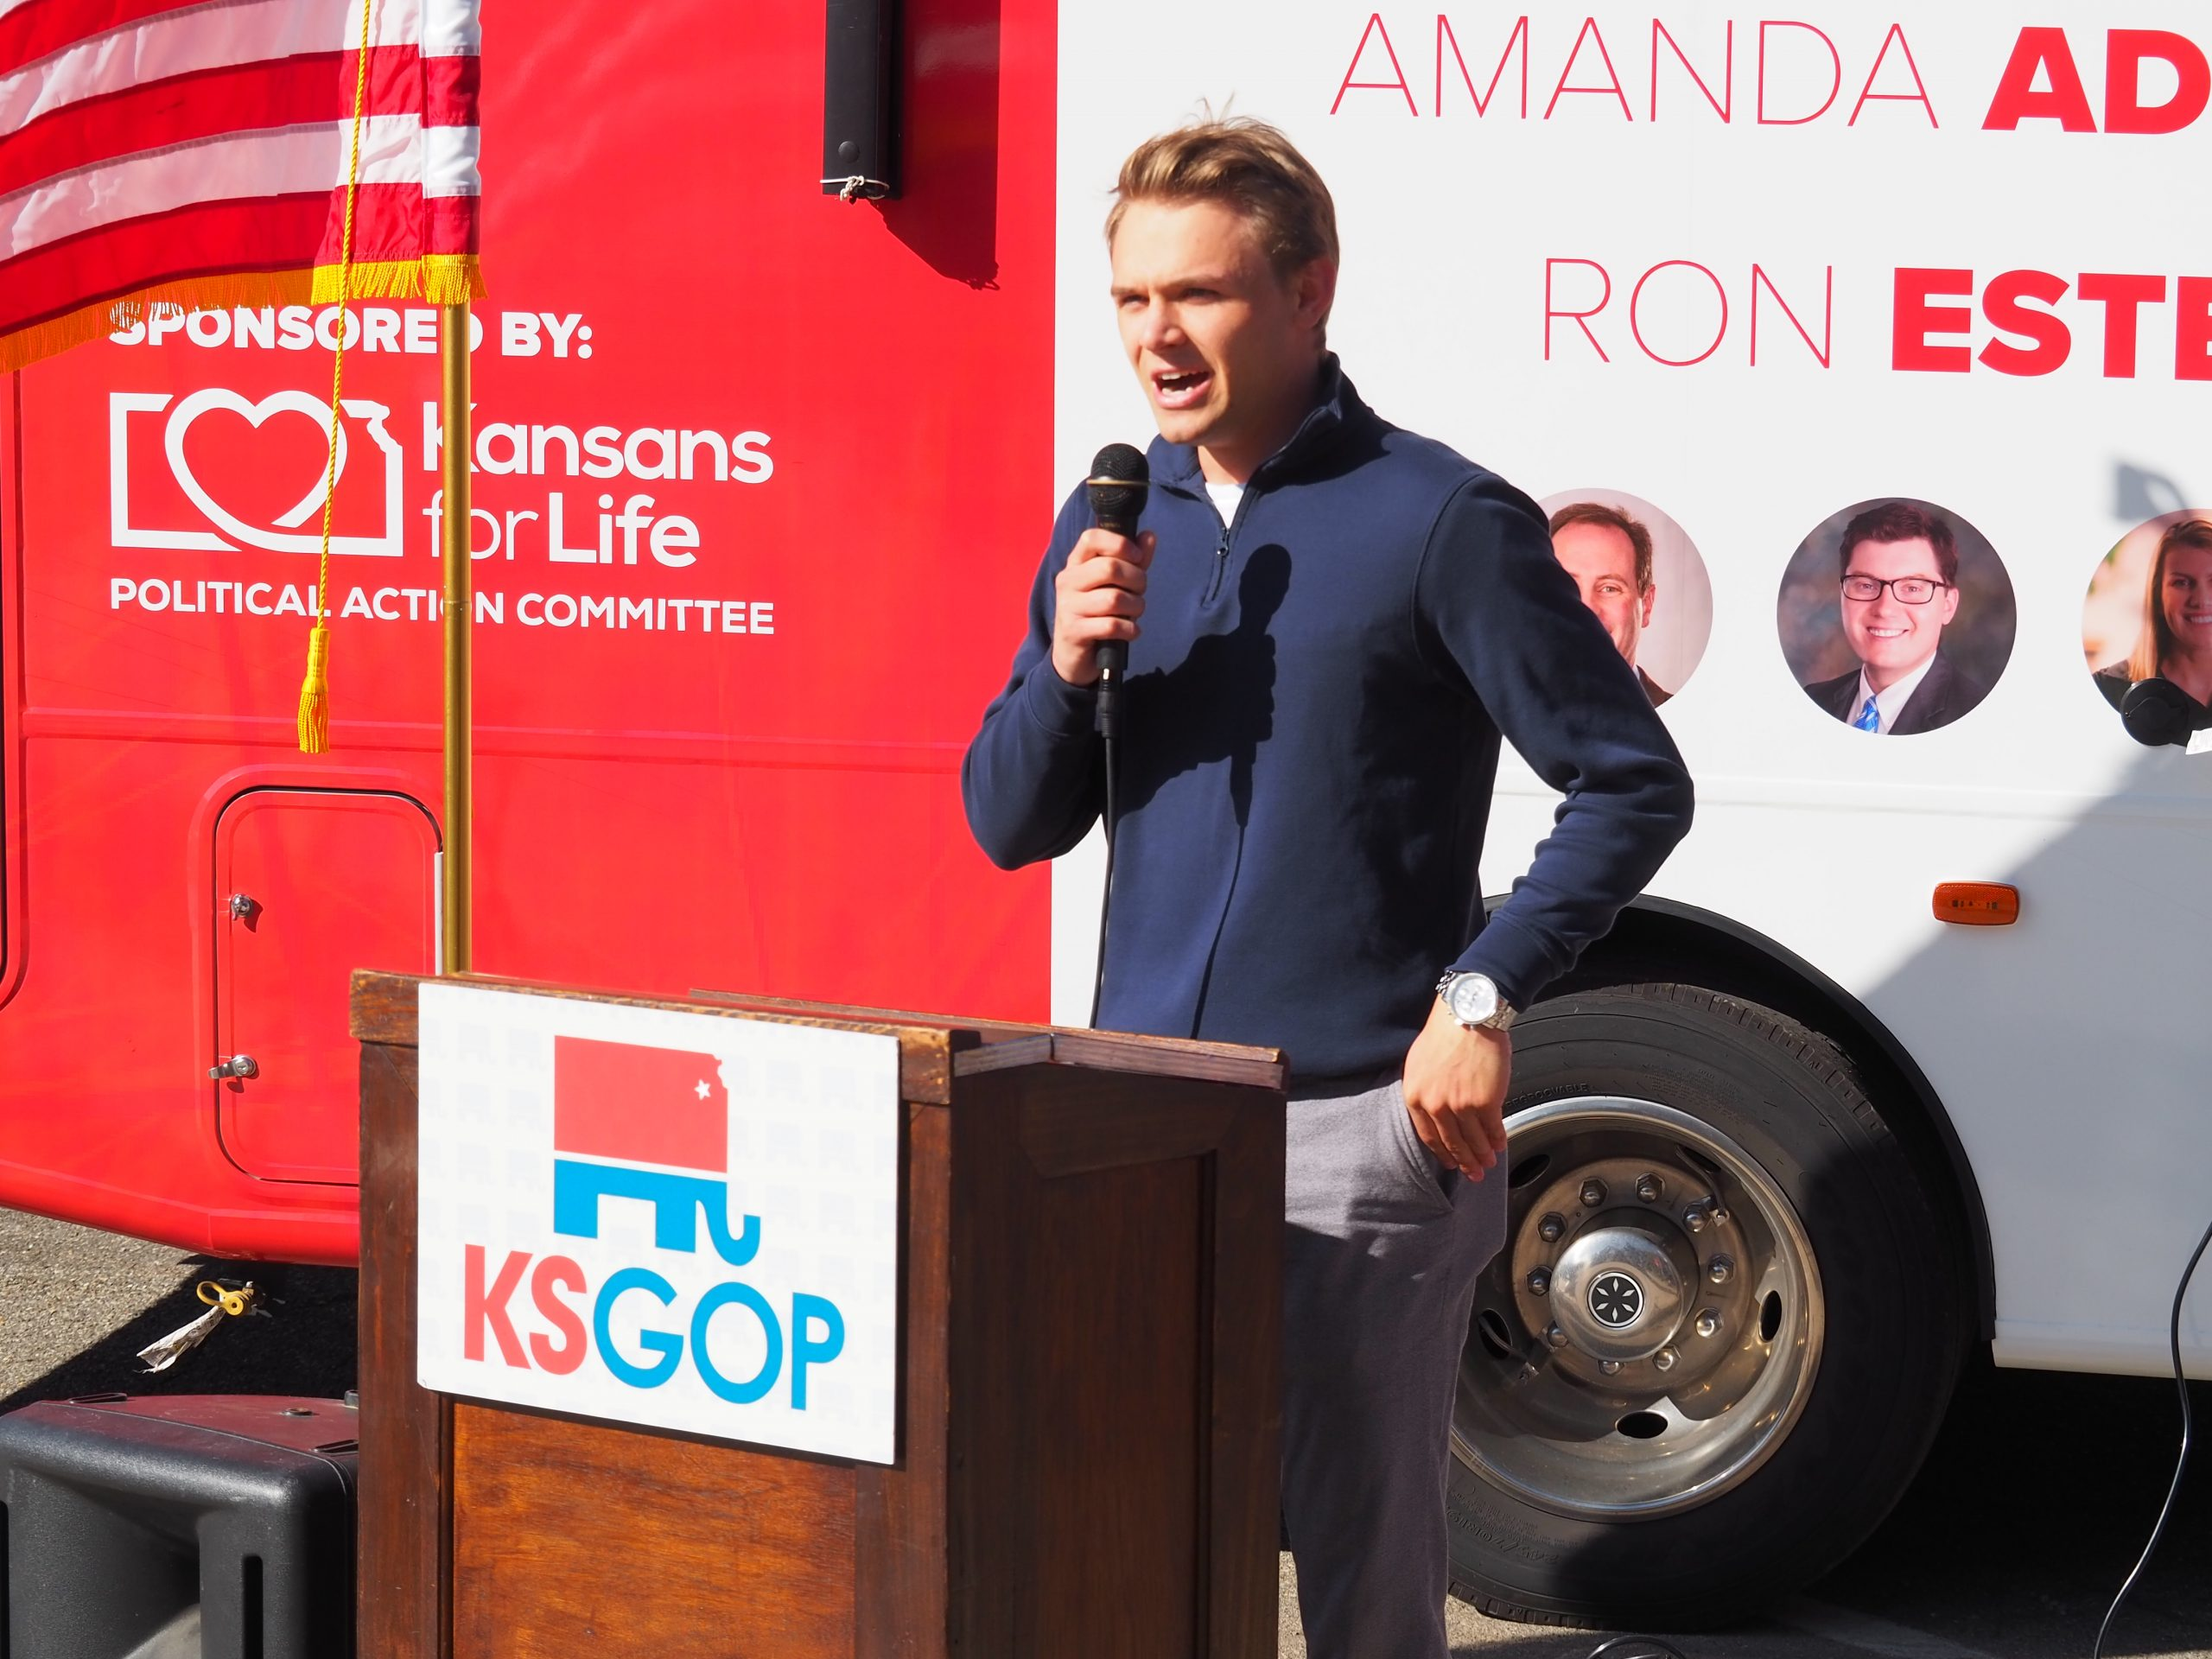 Avery Anderson, the Republican nominee for the Kansas House seat in Newton, explains why voters should reject the re-election bid of state Rep. Tim Hodge, a North Newton Demcorat, and help build a larger GOP majority in the Legislature. (Tim Carpenter/Kansas Reflector)